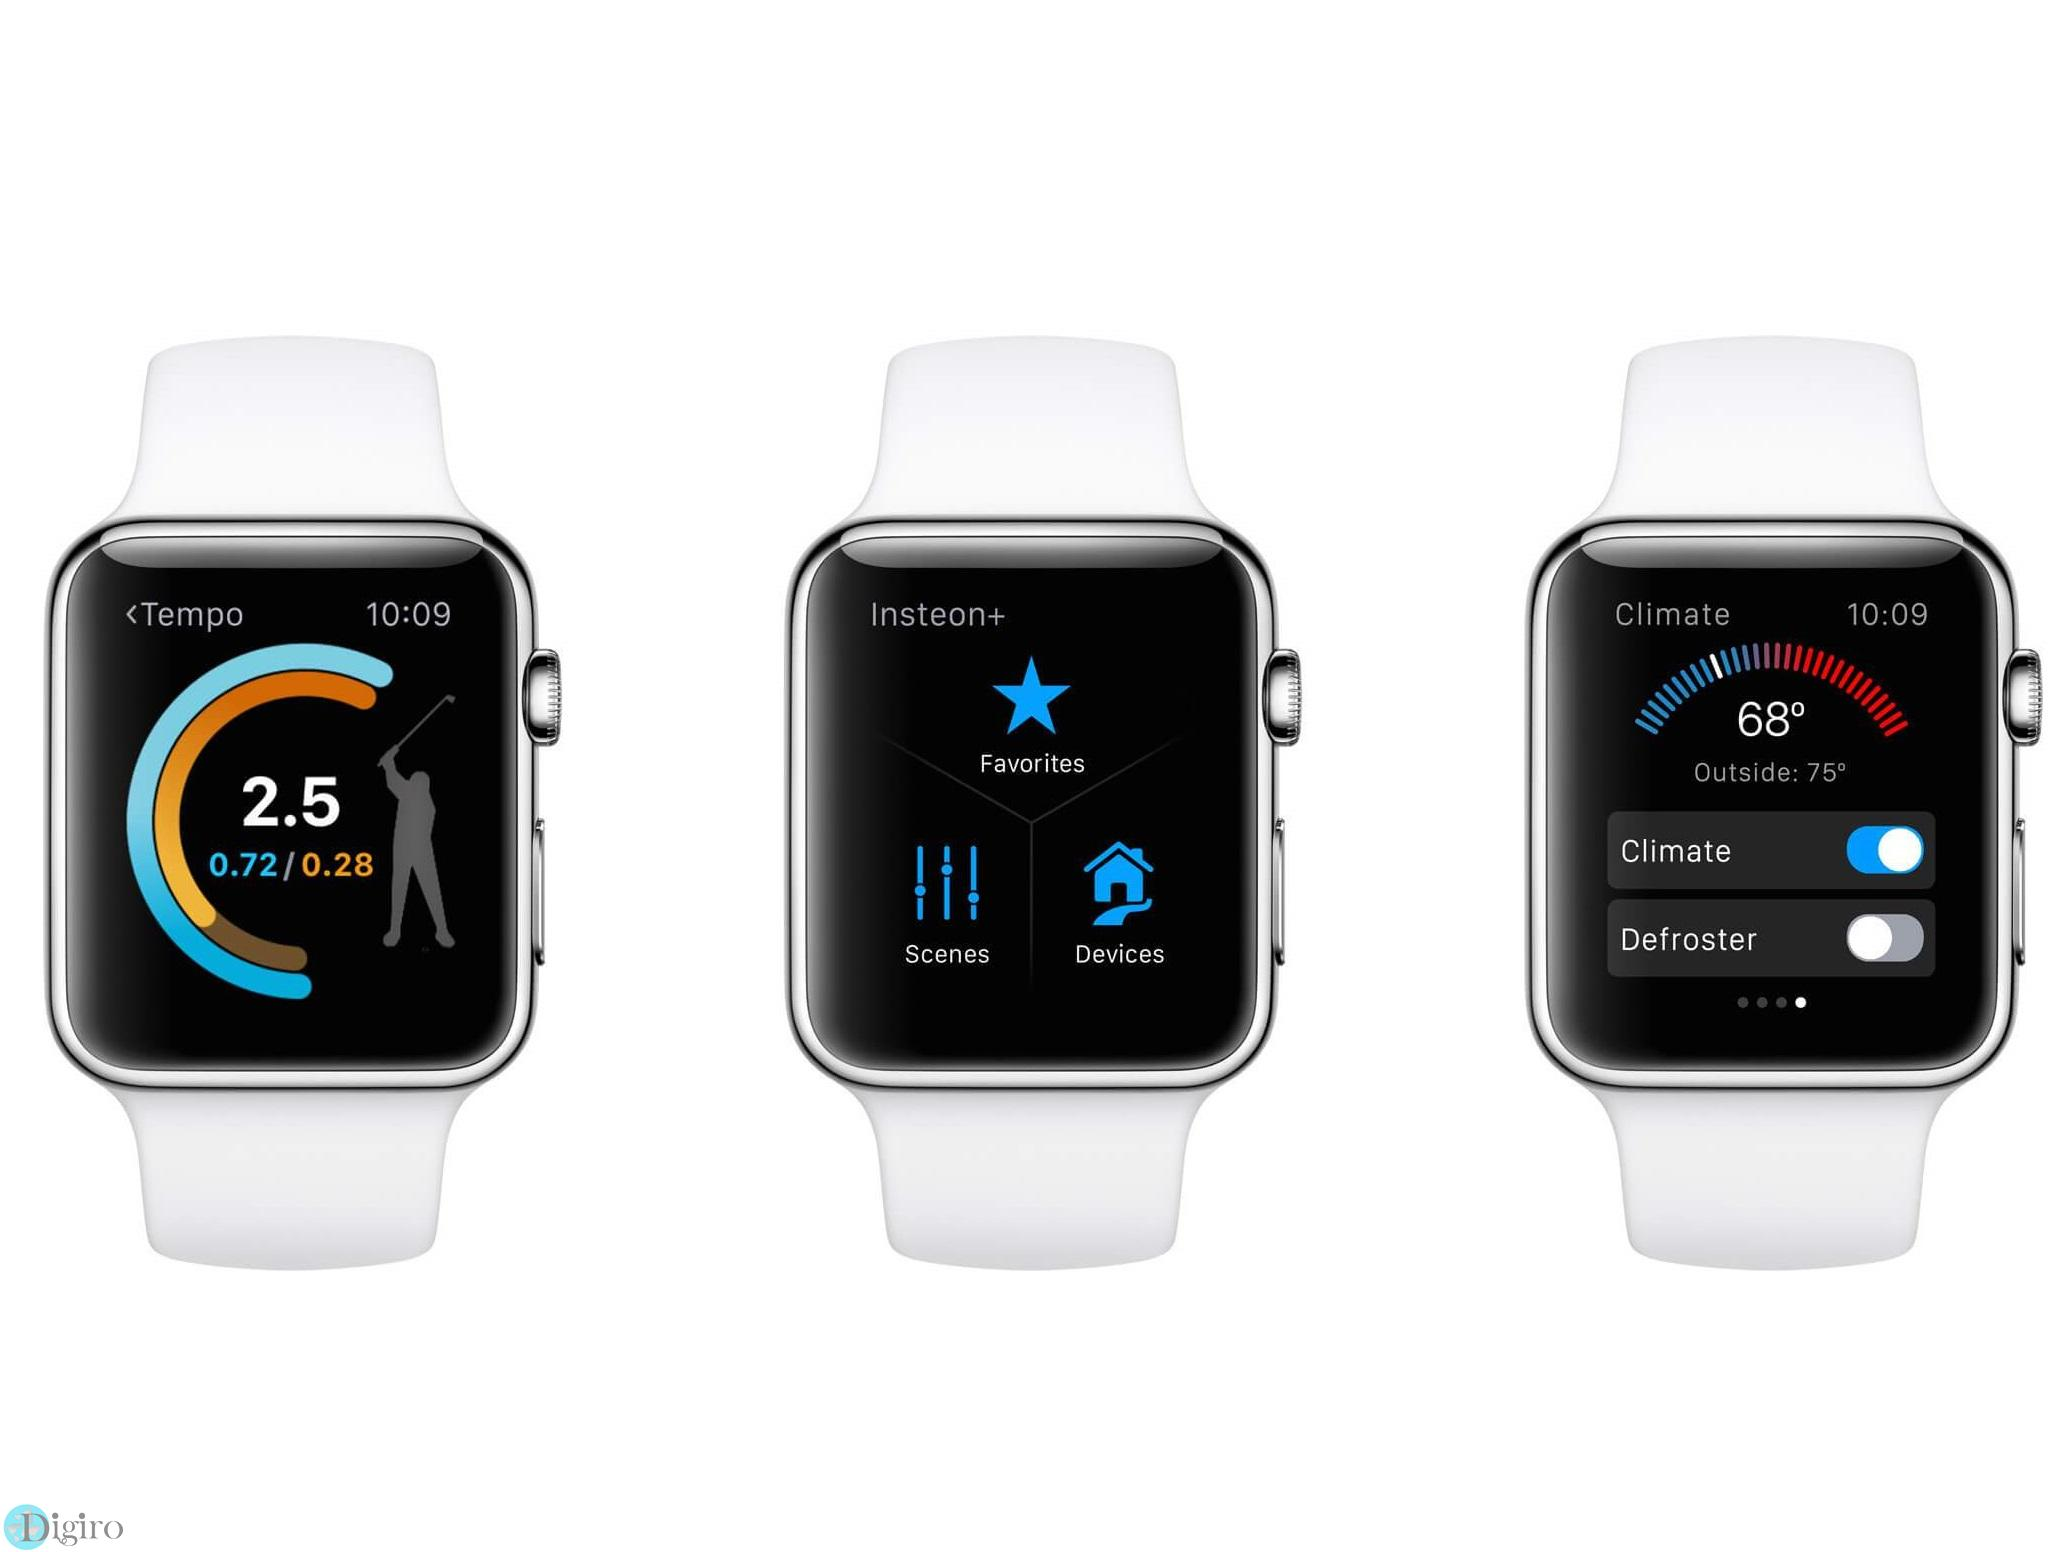 Apple Watch OS2 release